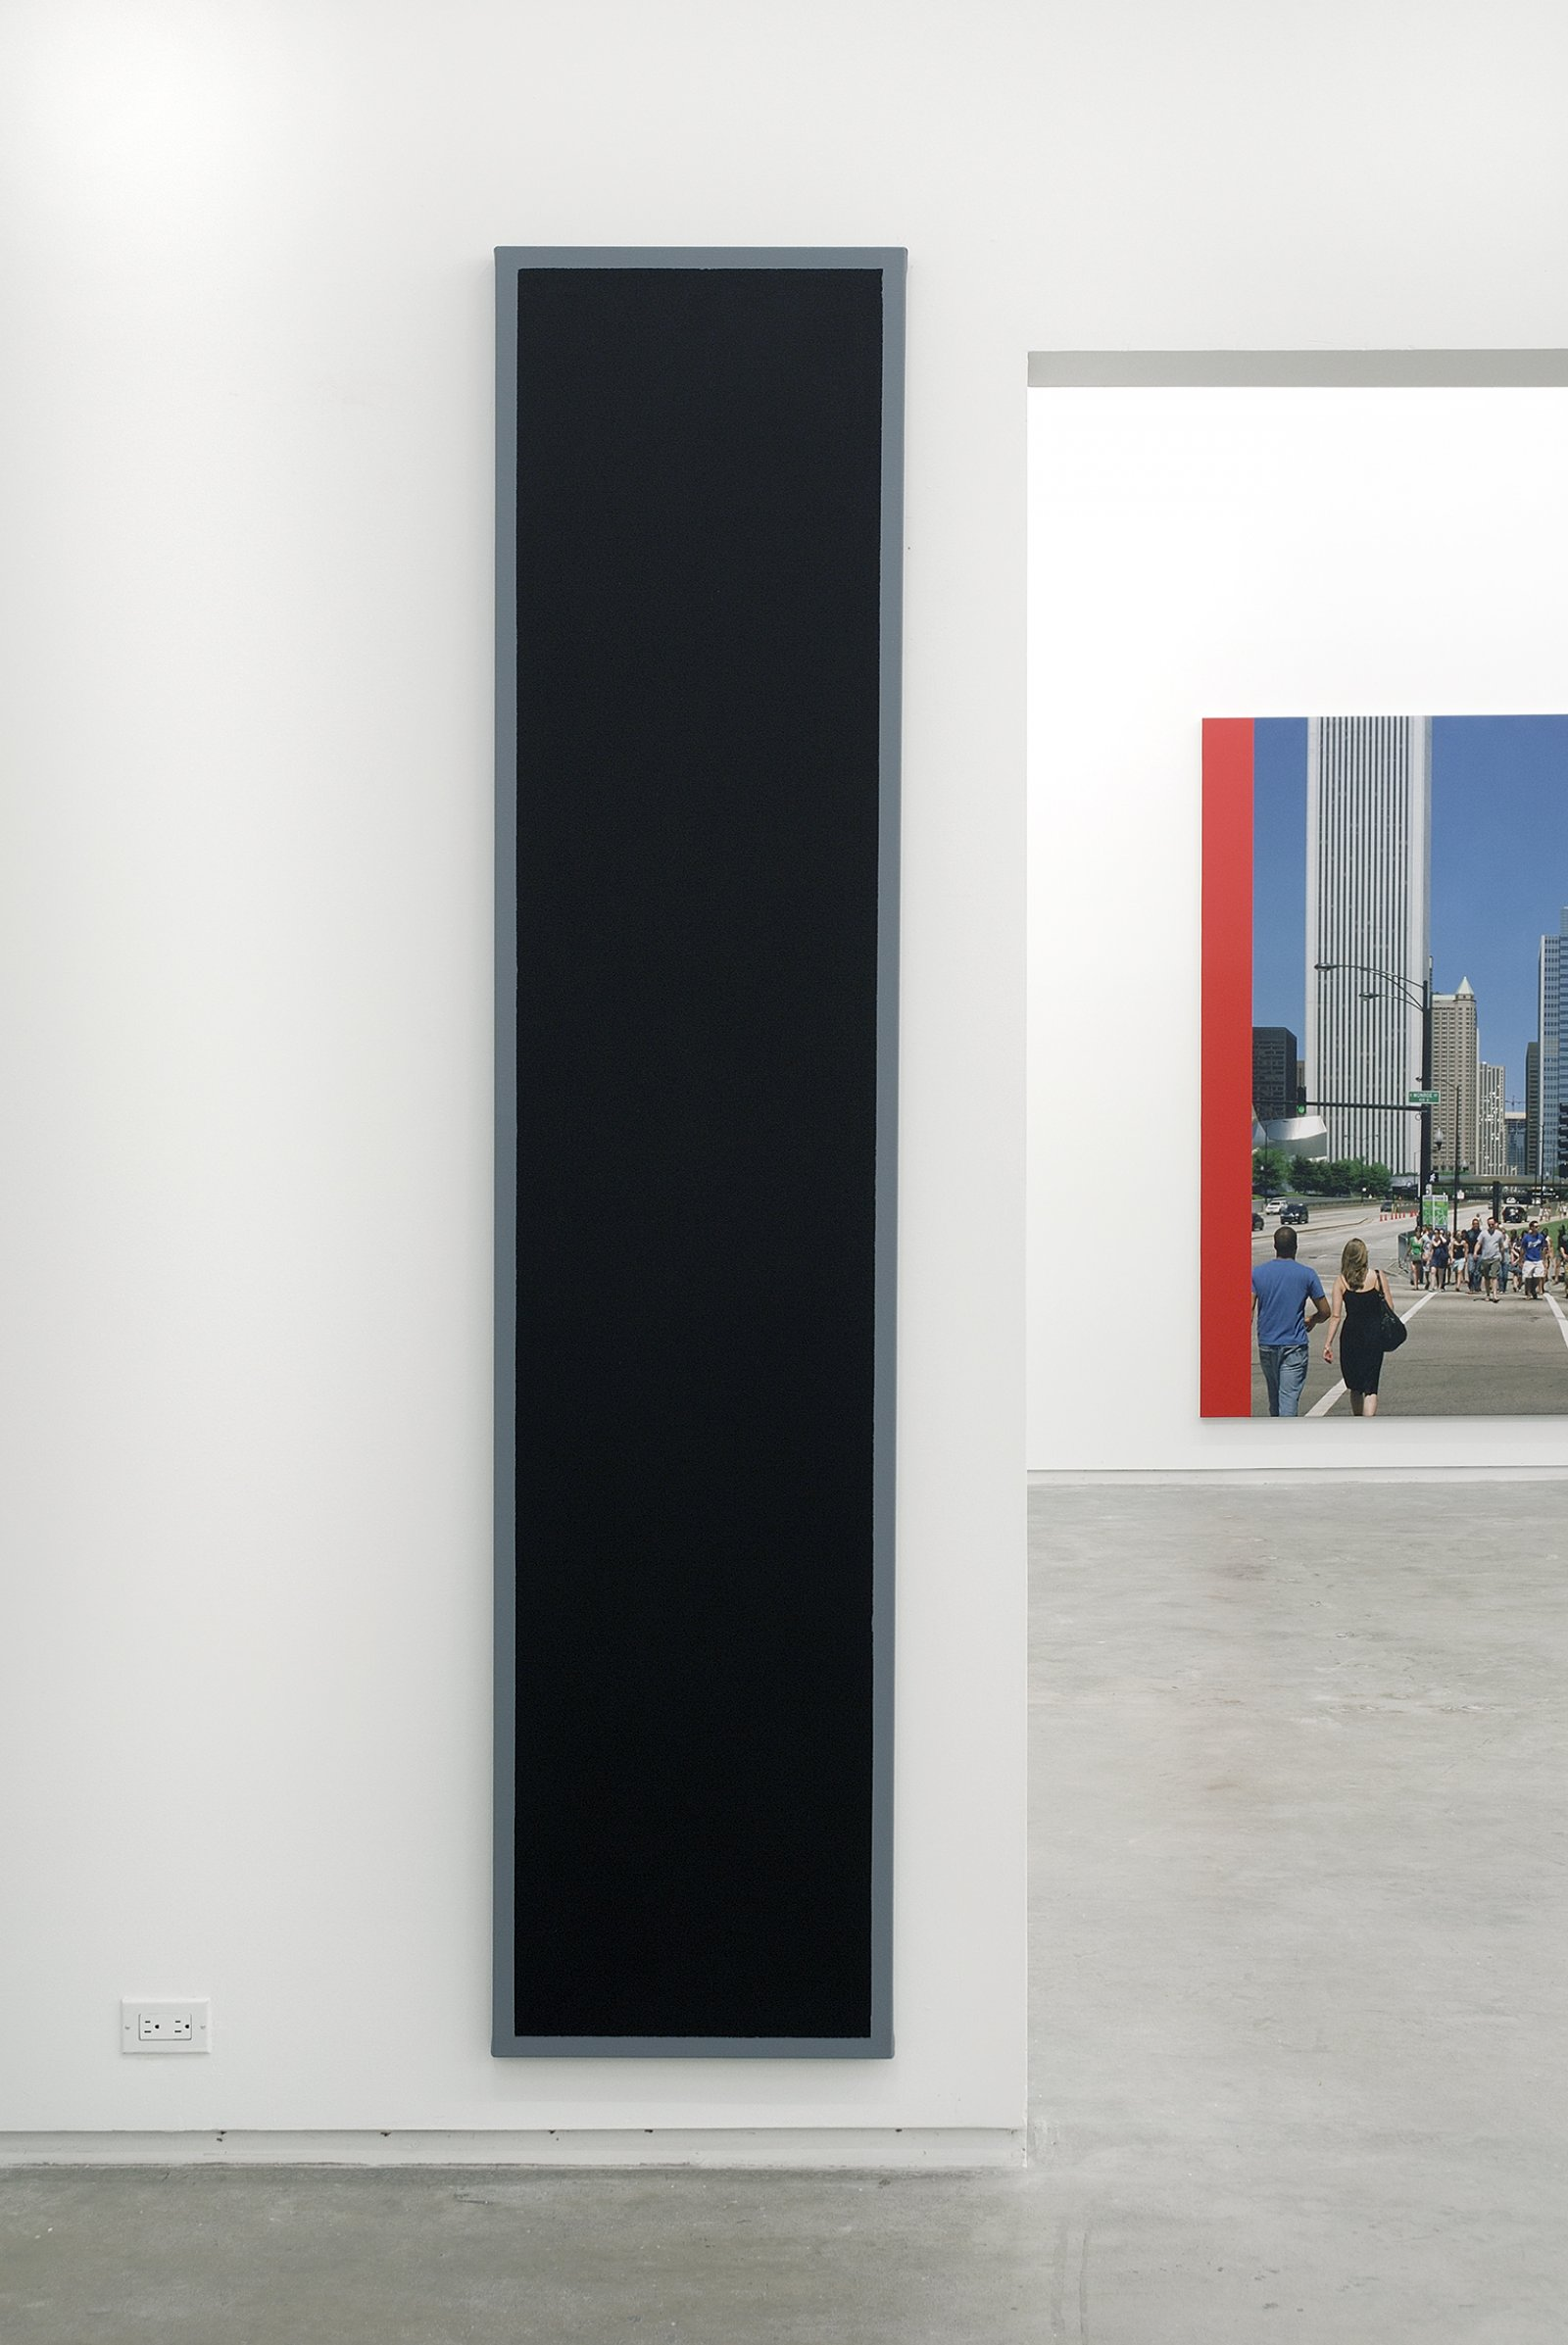 ​​Ian Wallace, Untitled (Black Monochrome with Grey), 1967–2007, acrylic on canvas, 90 x 20 in. (229 x 51 cm)​​​ by Ian Wallace